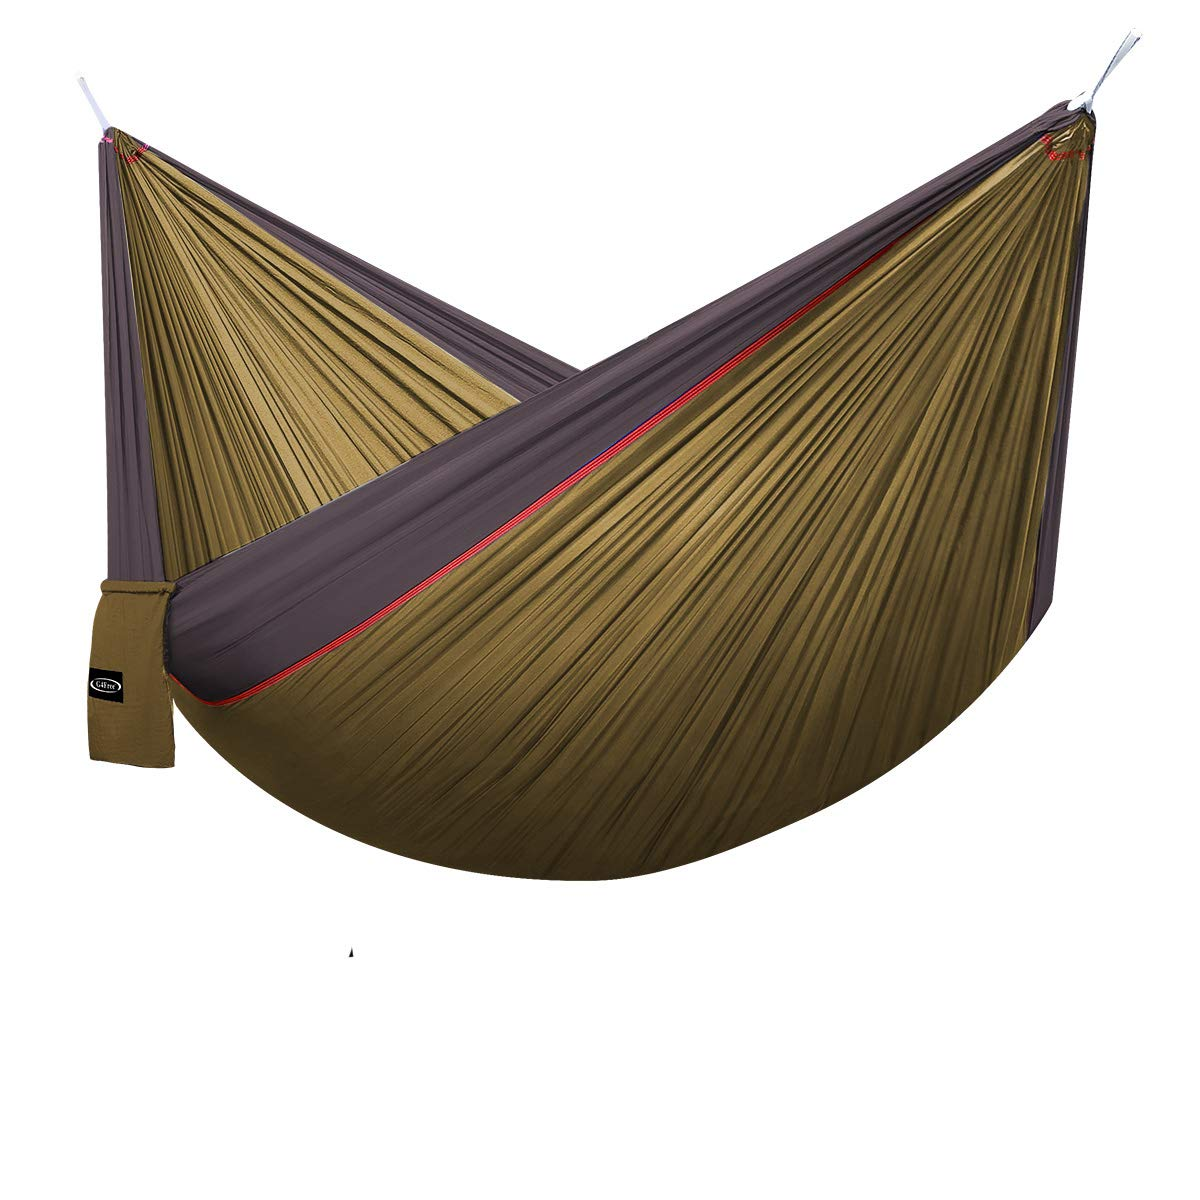 Grey Camel G4Free Double Camping Hammock  Portable High Strength Hammock  Lightweight Blend color Nylon Fabric Parachute for Outdoor. Hammock Straps & Steel Carabiners include